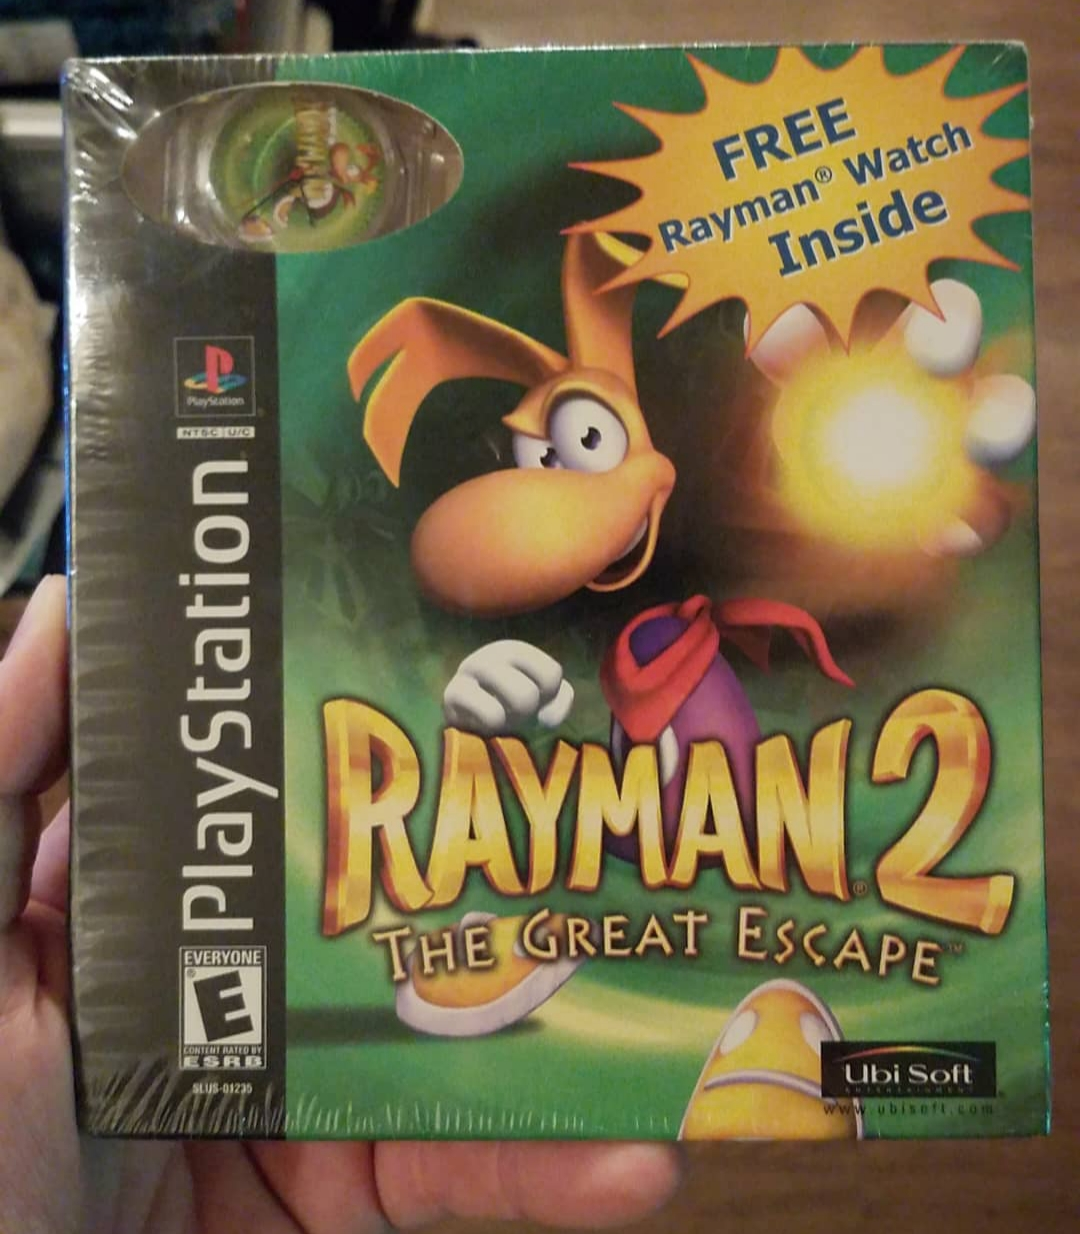 A rare Rayman game...